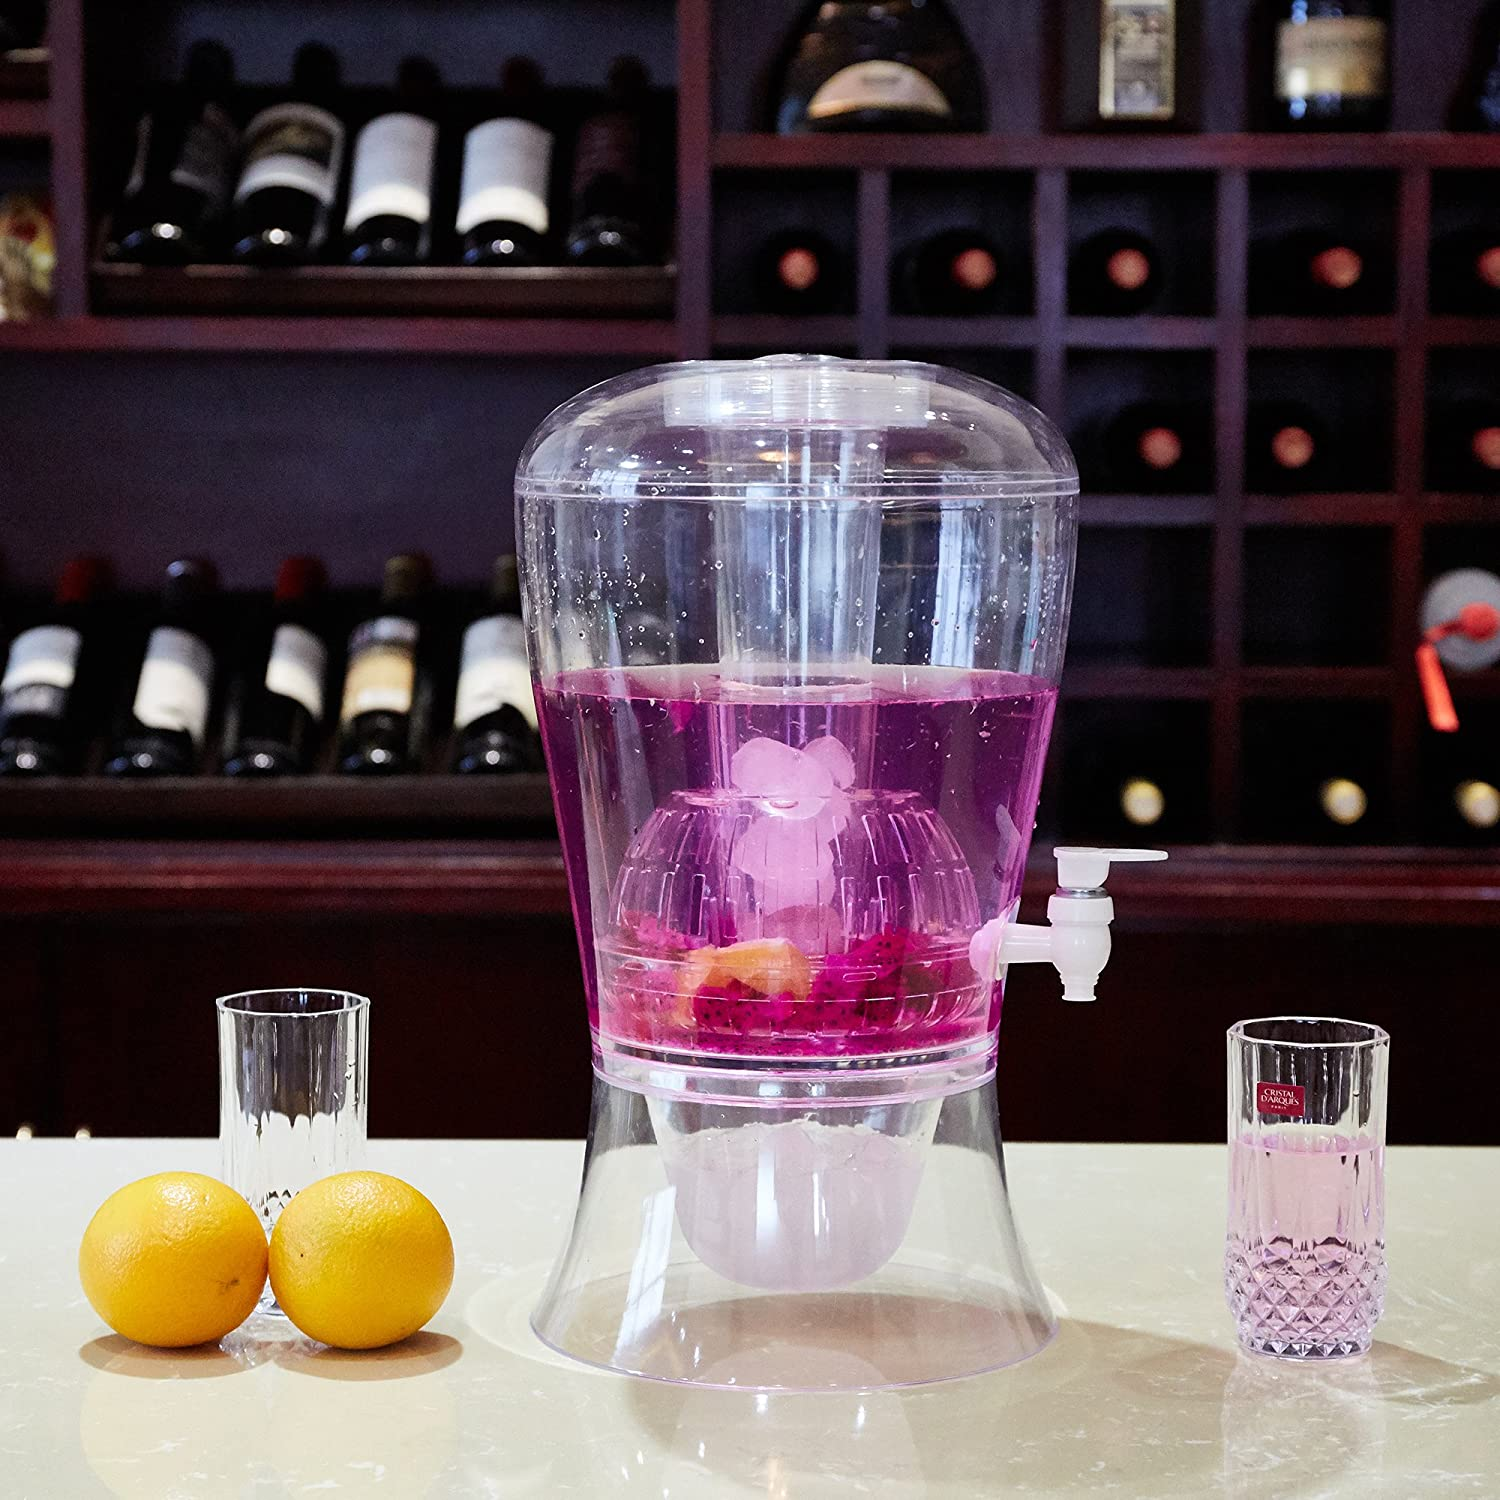 Dporticus 2 Gallon beverage dispenser on Stand with Cooling Cylinder, Tea and Fruit Infuser Shatterproof Acrylic BPA Free, Dishwasher Safe